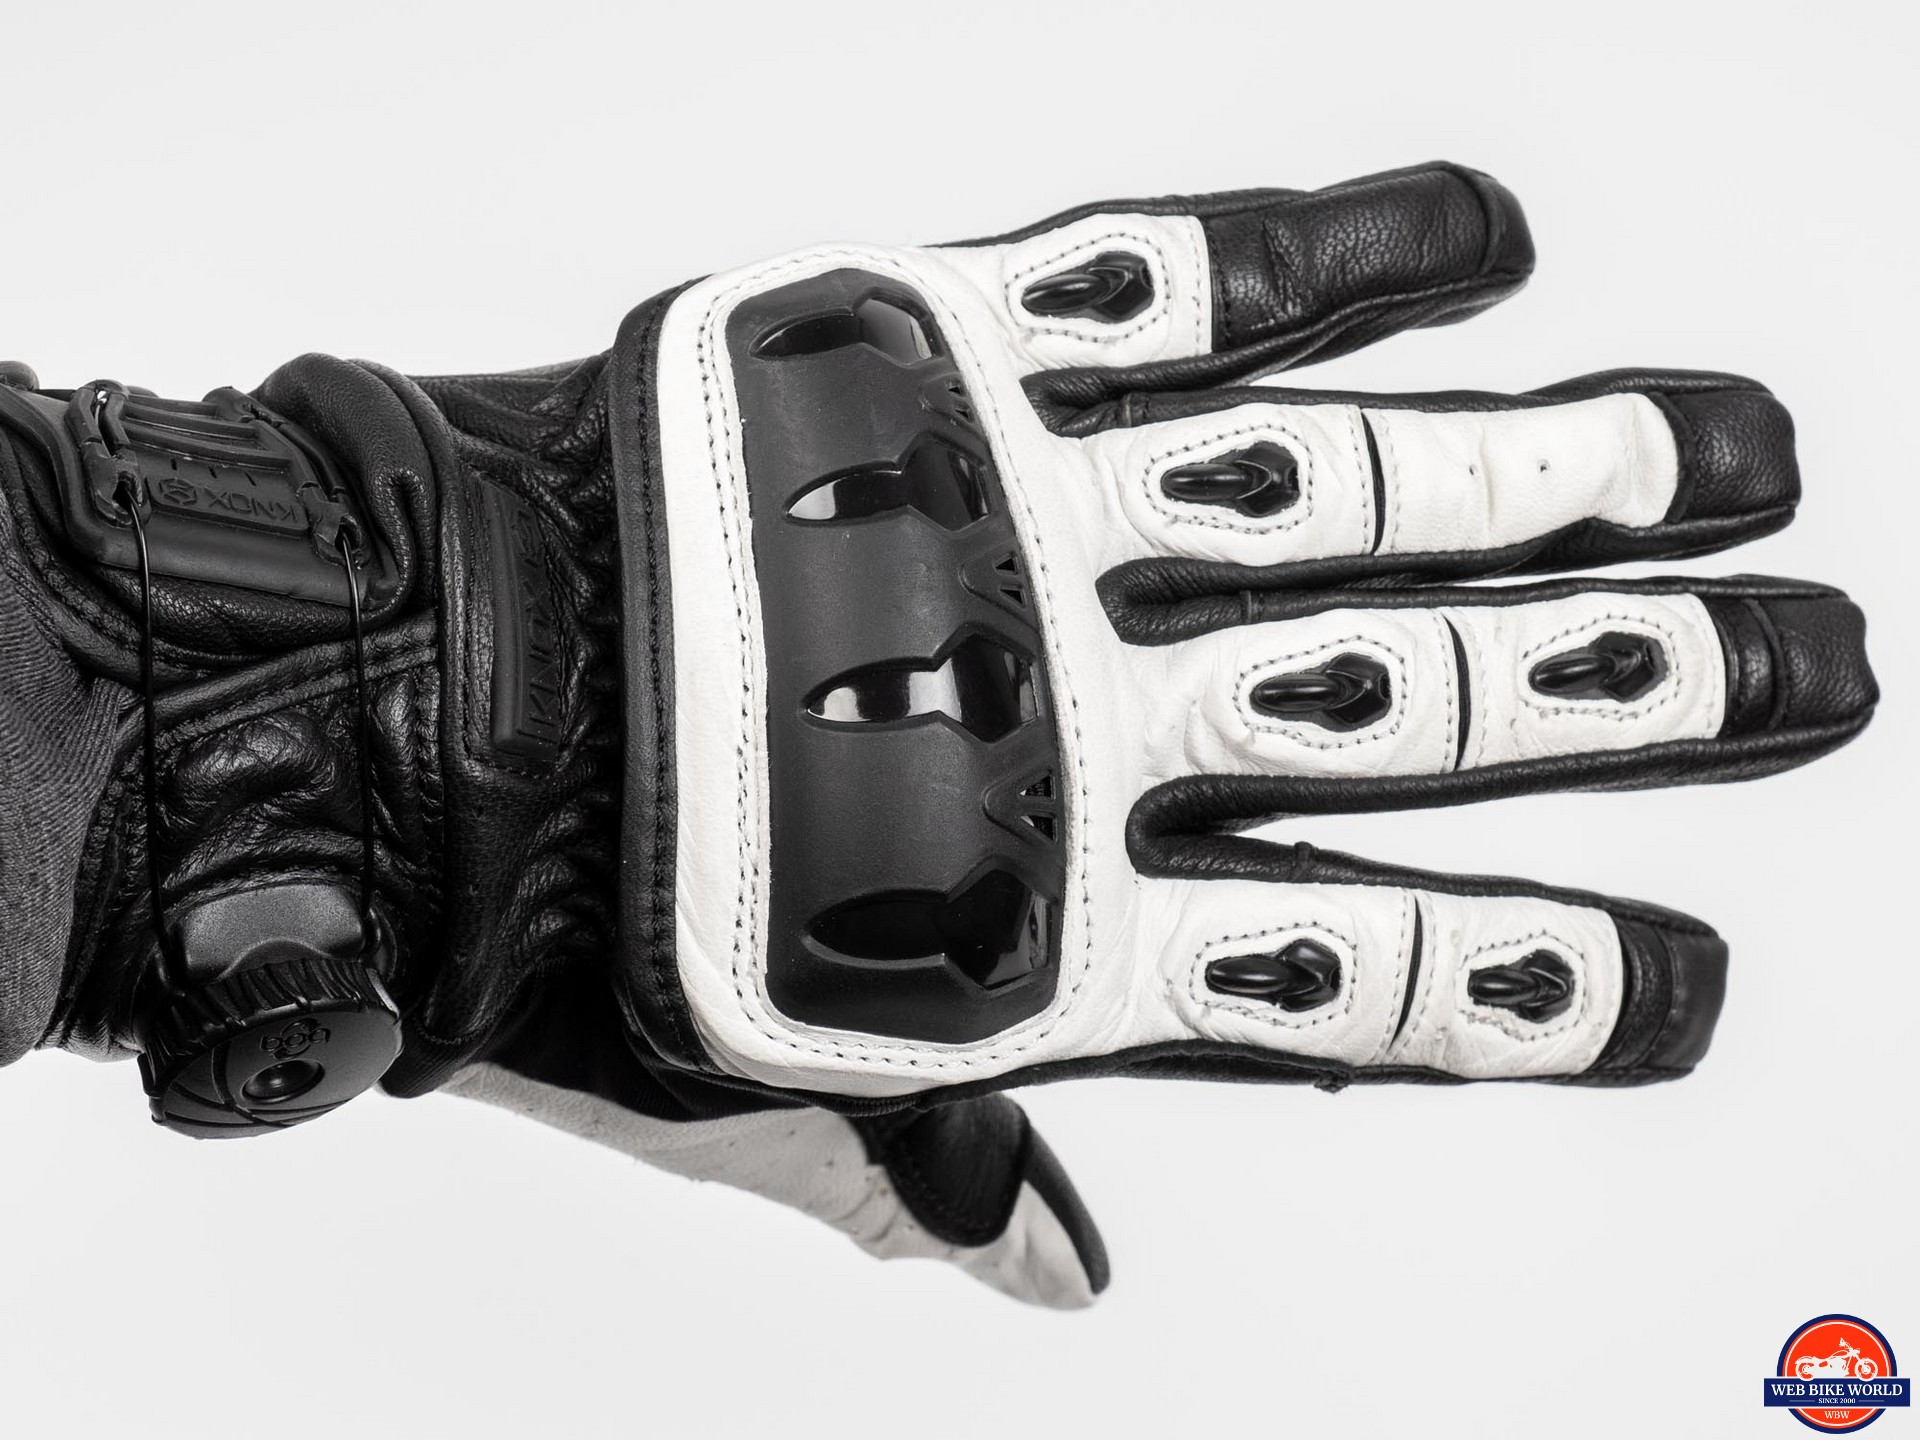 Knox Orsa Leather MKII Glove knuckle/finger armor view